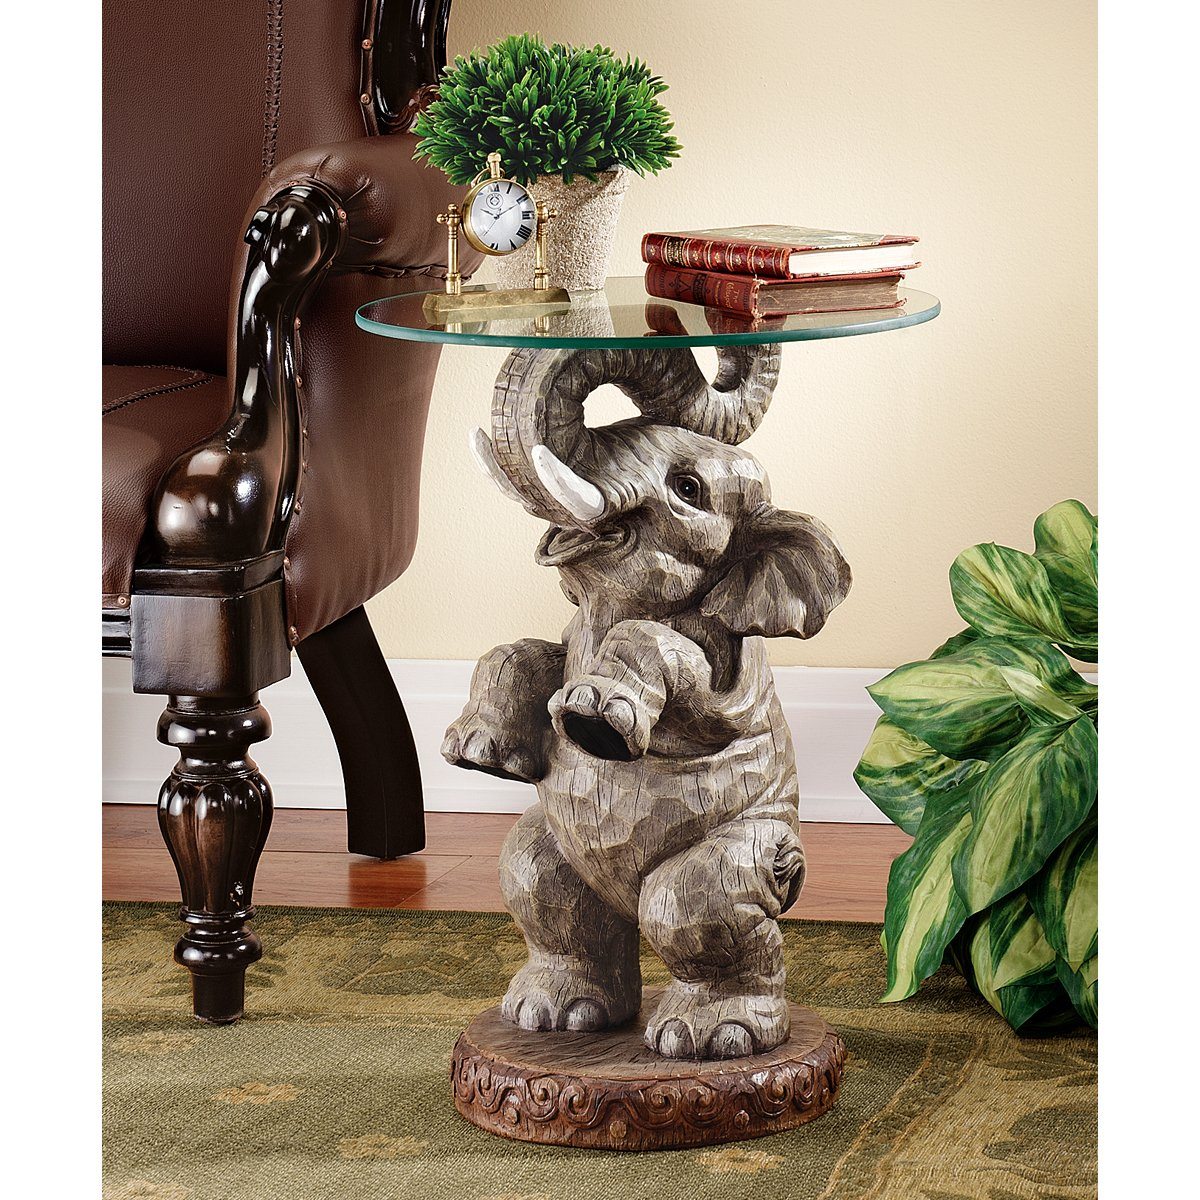 Design Toscano Good Fortune Elephant African Decor Glass Topped Side Table, 21 Inch, Polyresin, Full Color by Design Toscano (Image #2)